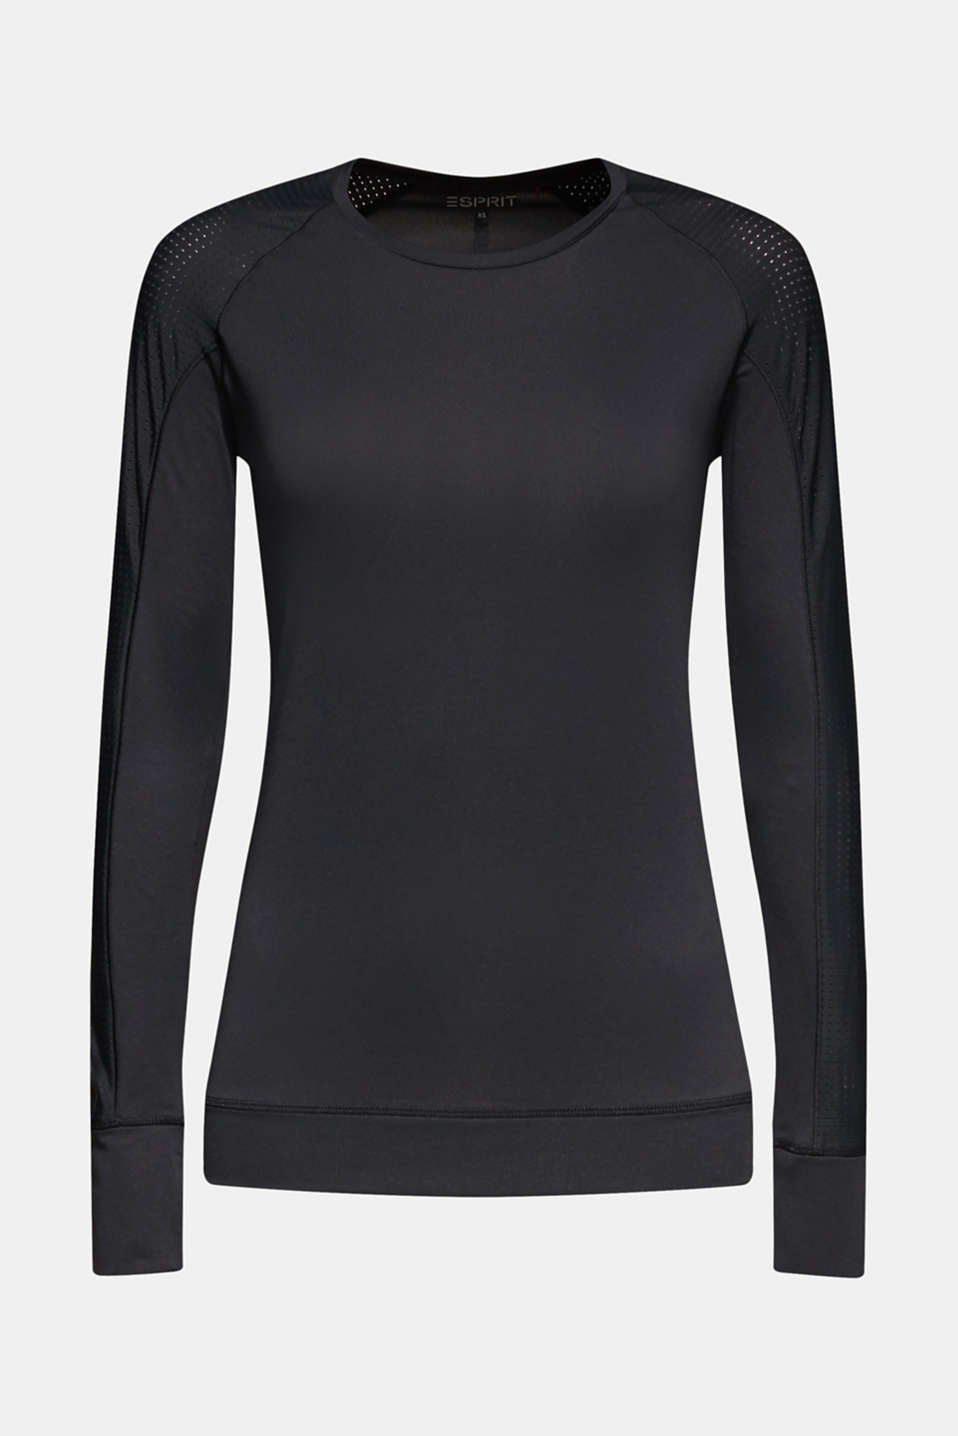 Stretchy long sleeve top with mesh sleeves, E-DRY, BLACK, detail image number 5